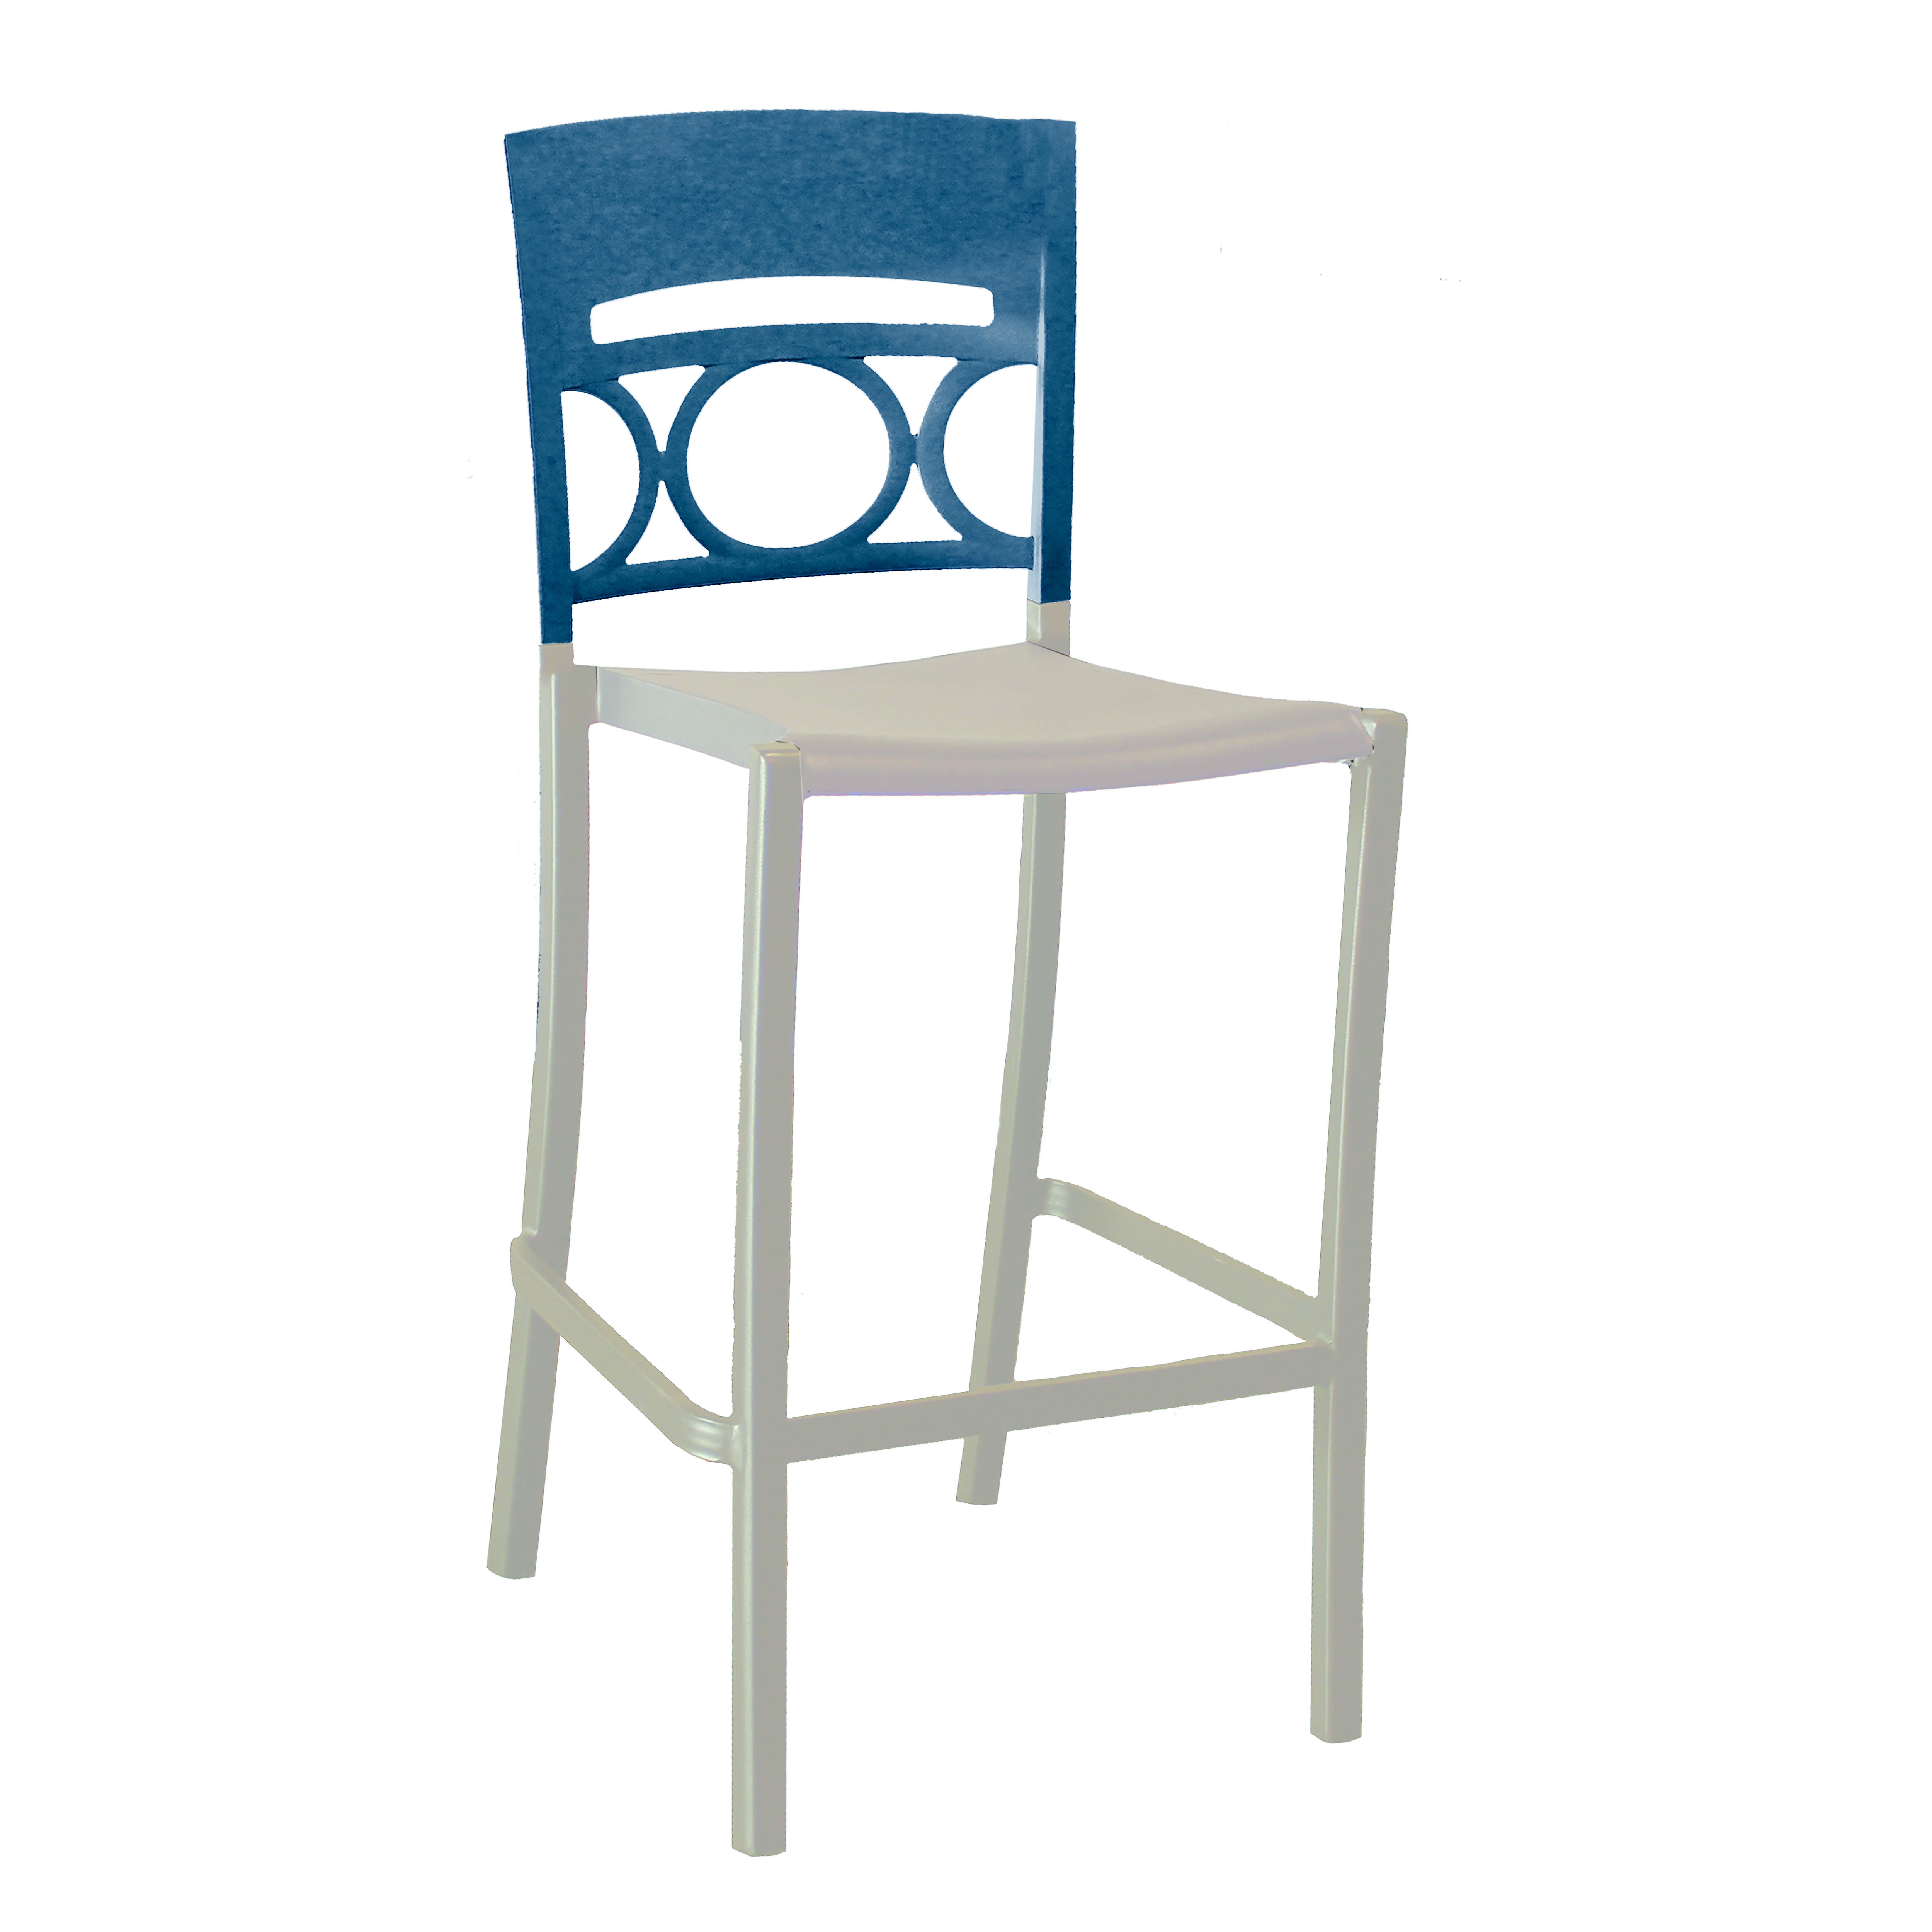 Grosfillex US456680 bar stool, stacking, outdoor